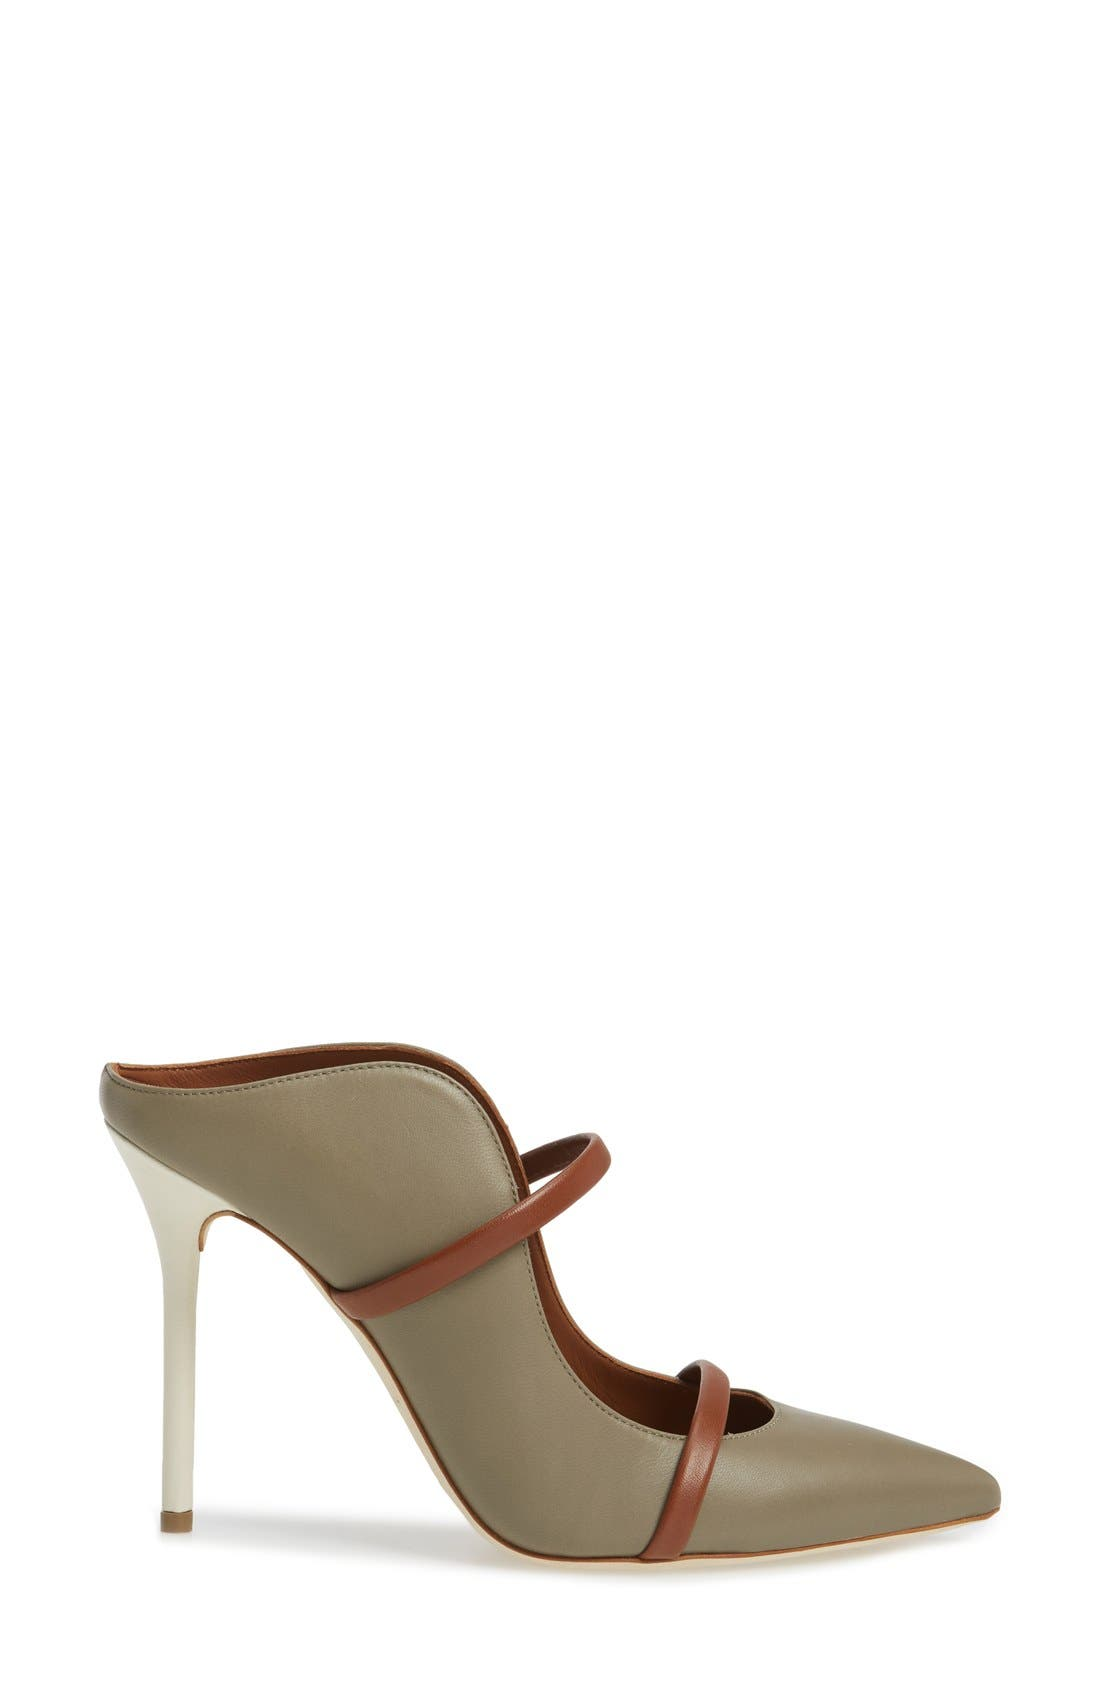 Malone Souliers 'Maureen' Pointy Toe Mule,                             Alternate thumbnail 6, color,                             025